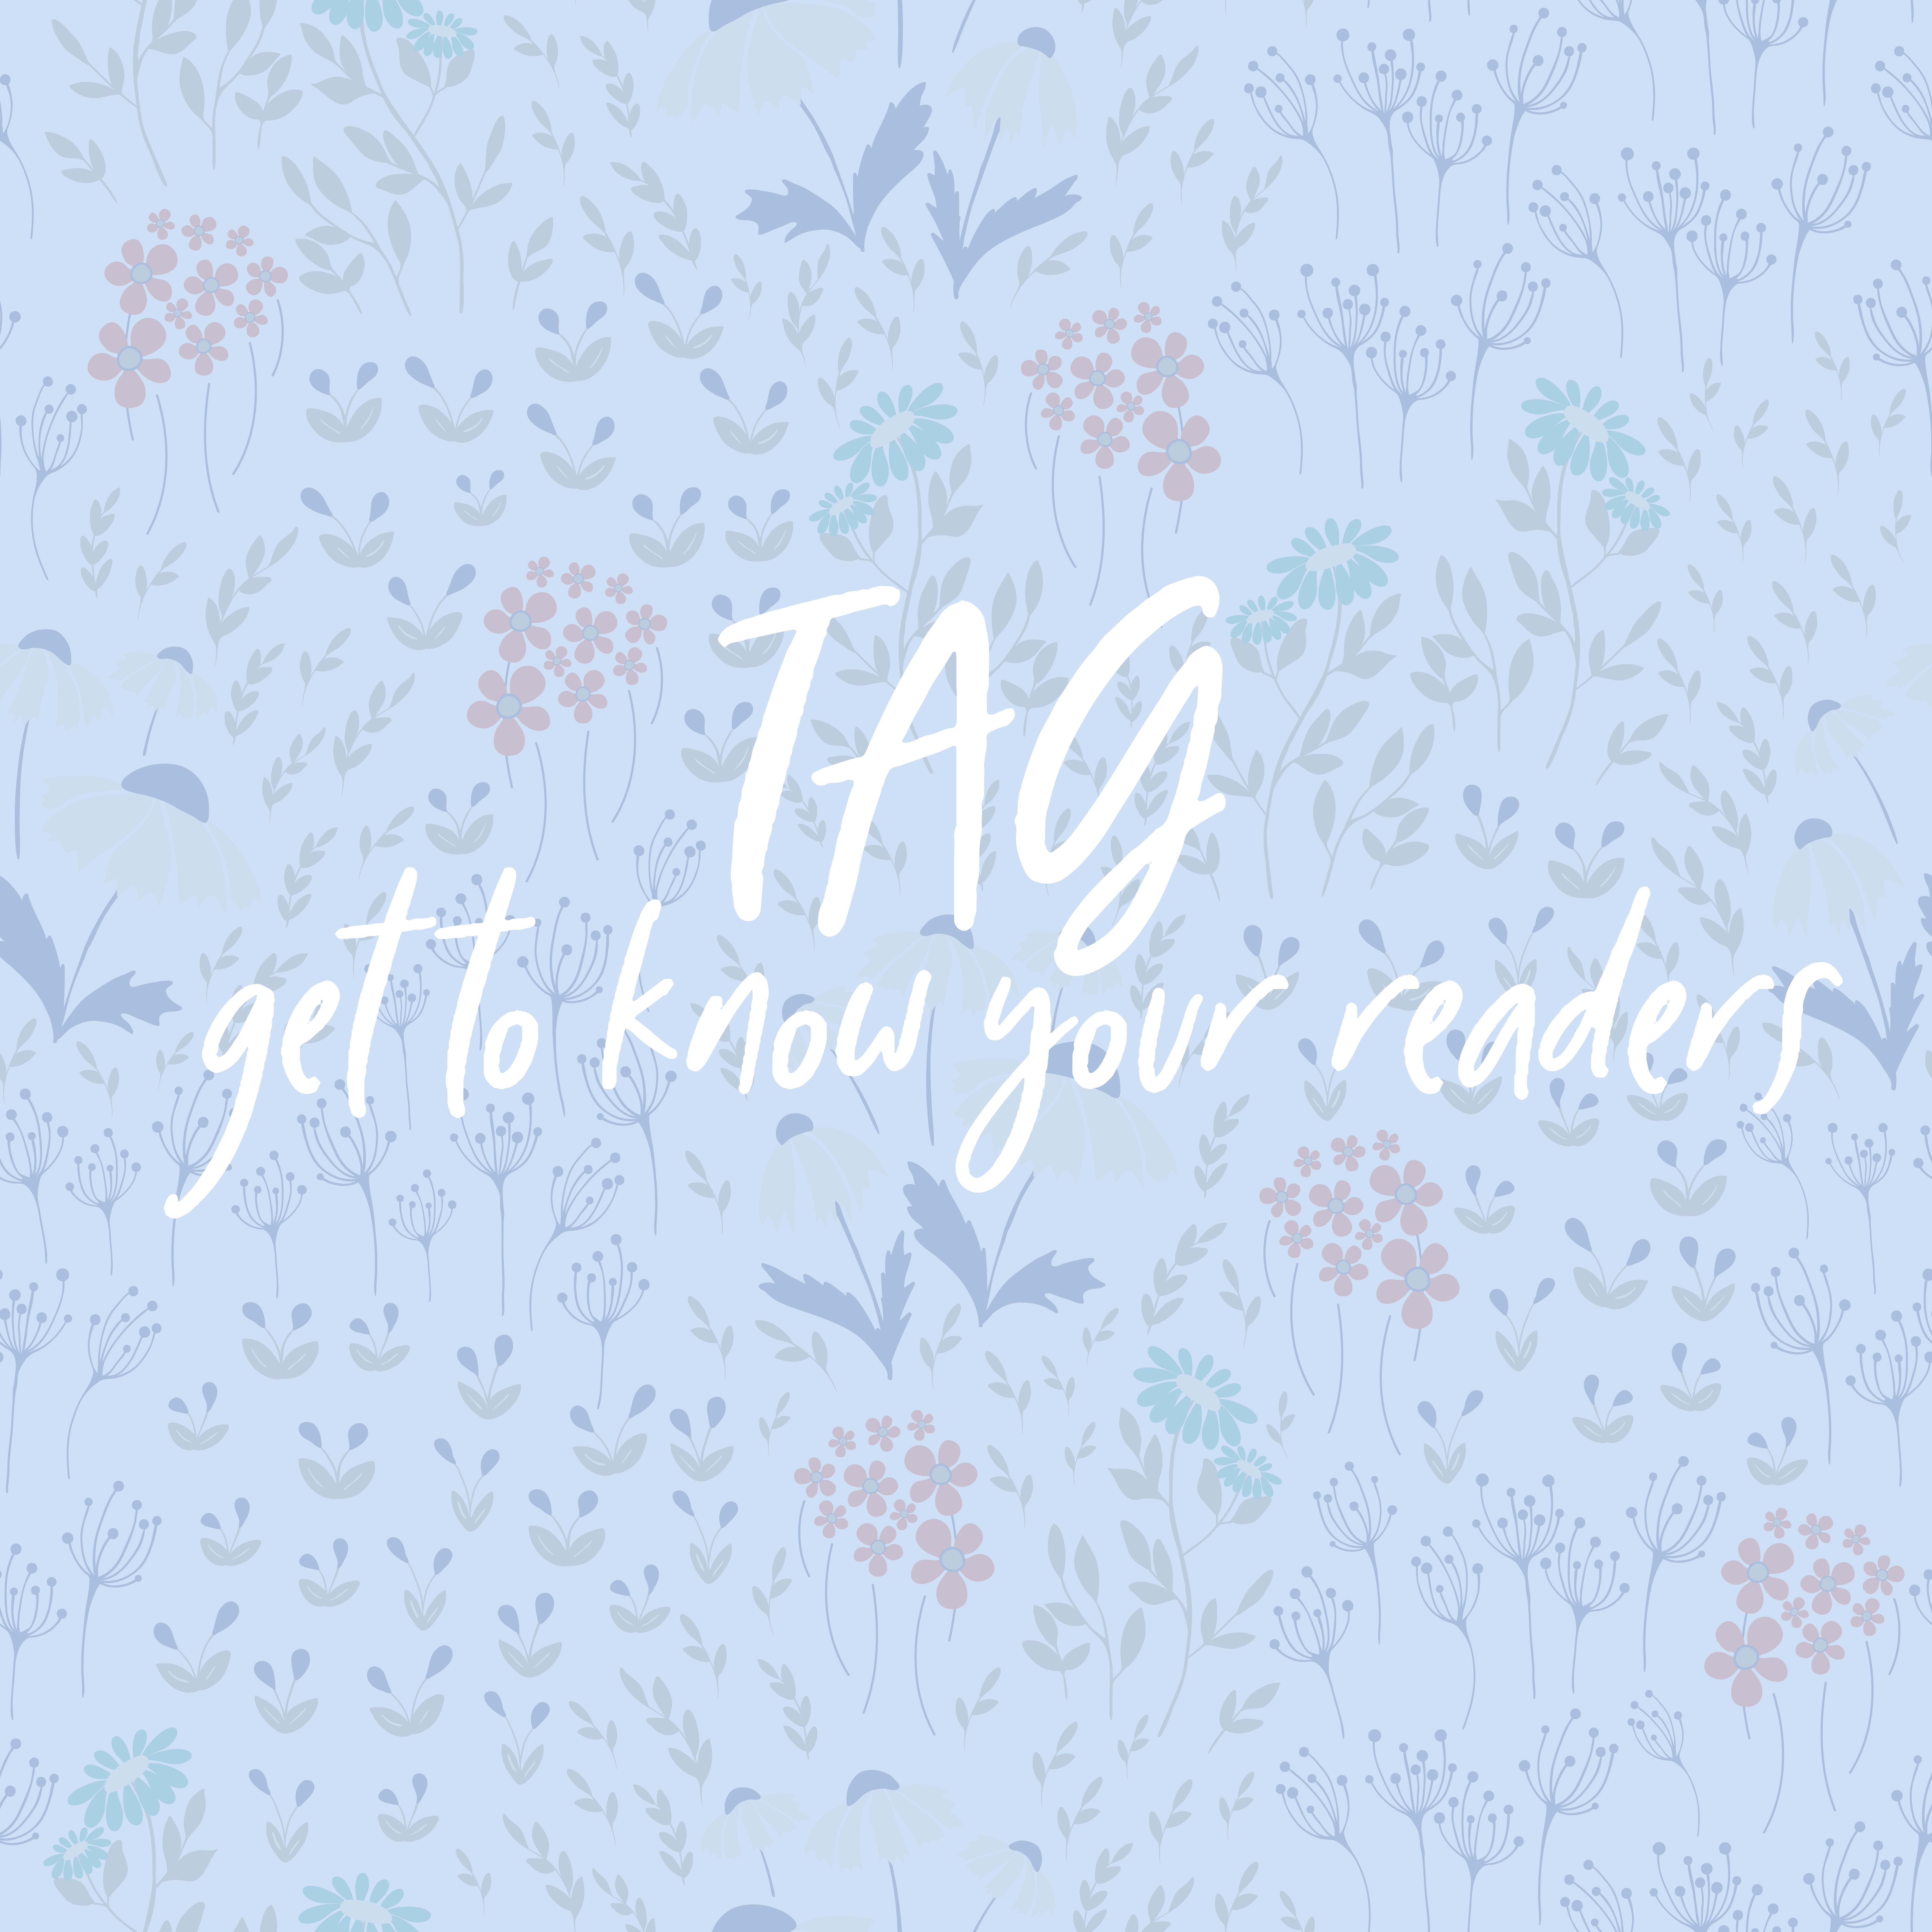 Get to know your readers.